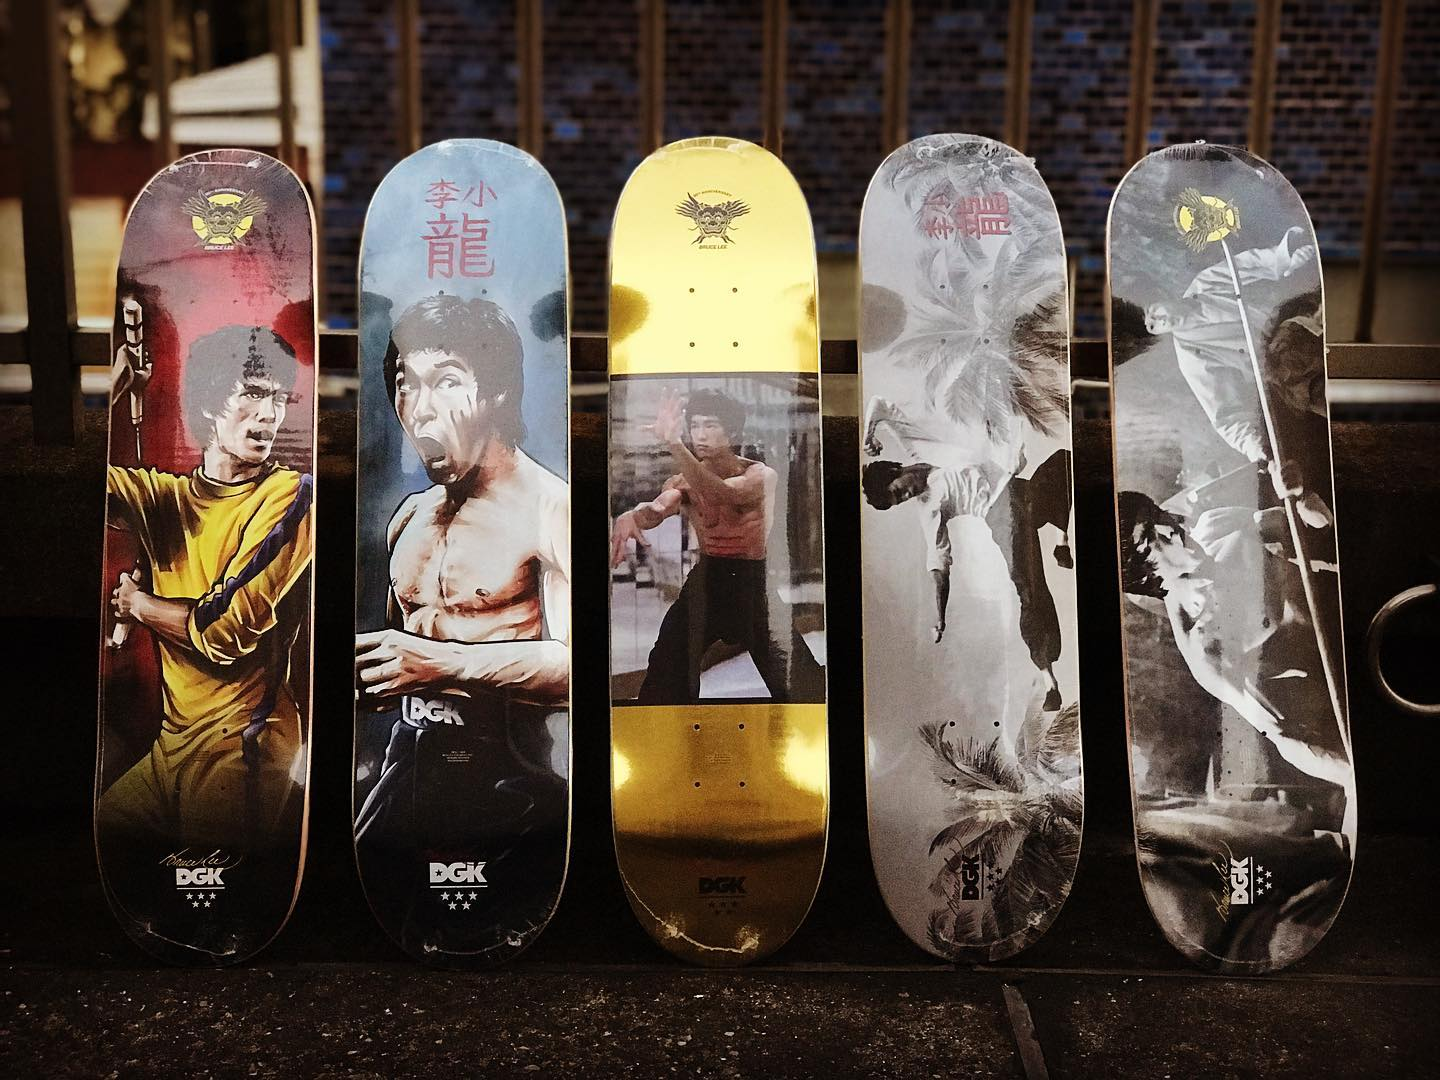 ・New @dgk decks.・・・Return of the DragonDgk x @brucelee